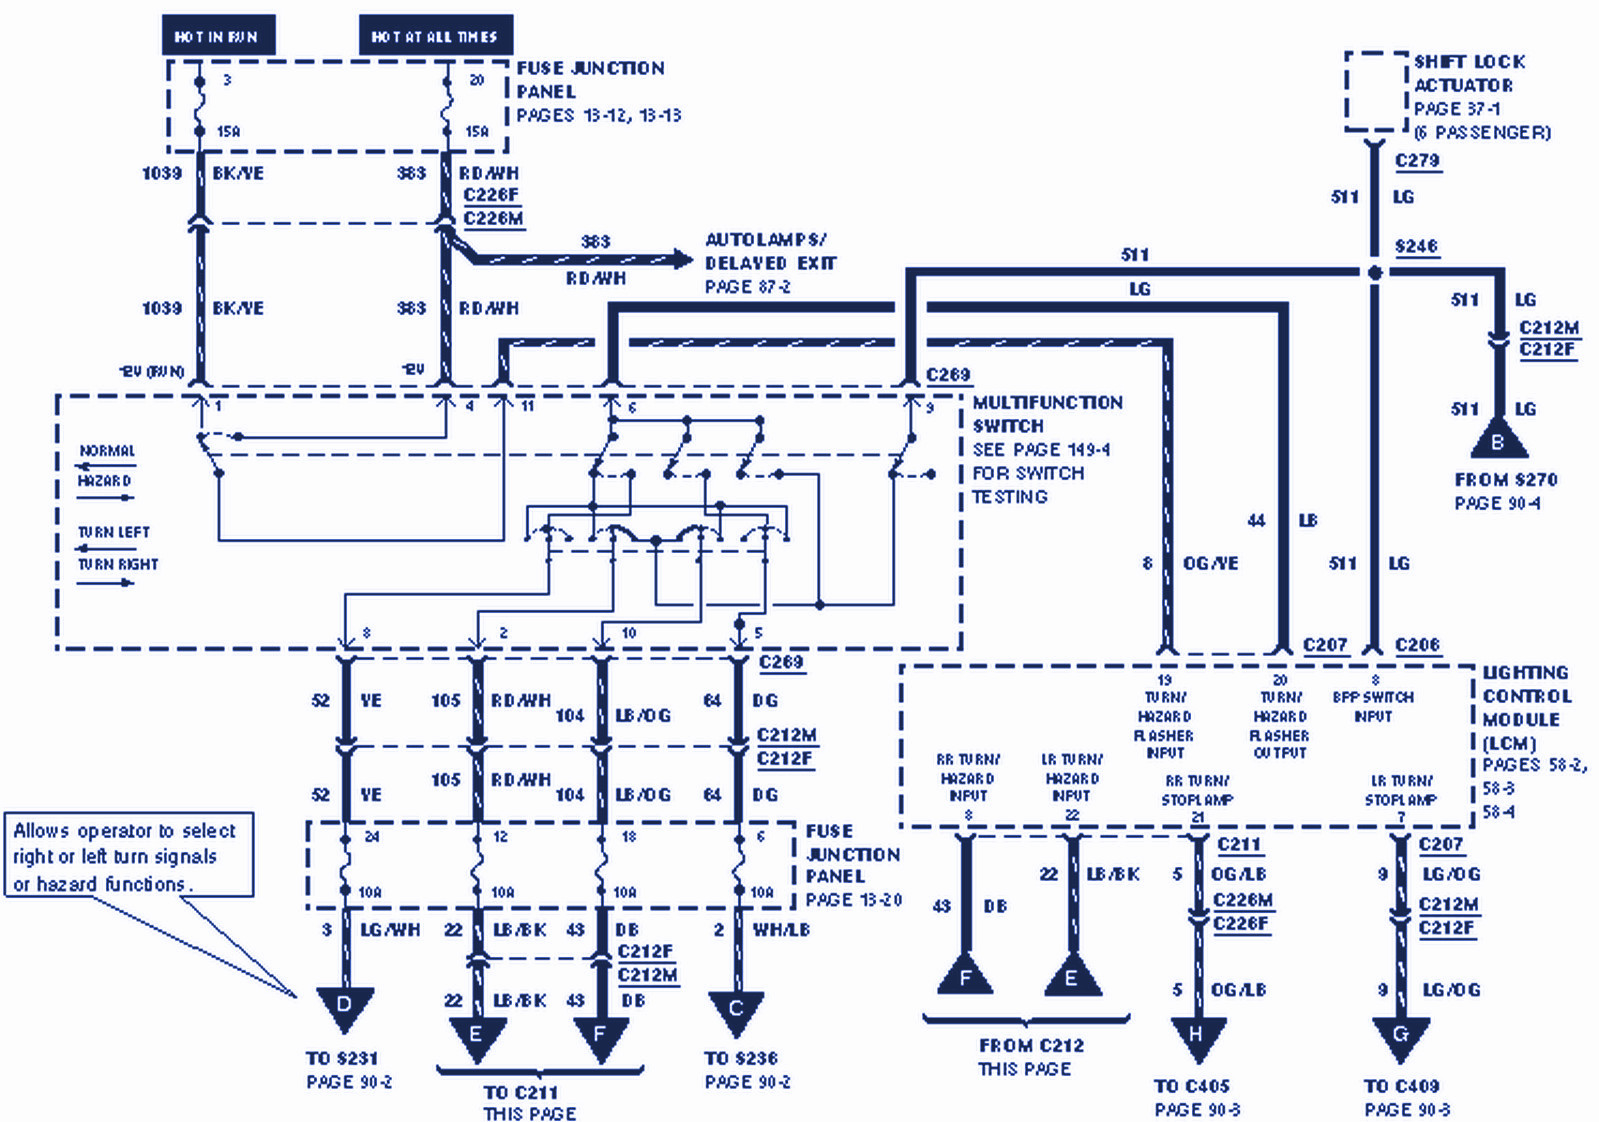 Wiring Diagram For 1999 Lincoln Town Car - wiring diagram cycle-other -  cycle-other.exitmedia.it | 99 Lincoln Continental Wiring Diagram |  | ExitMedia